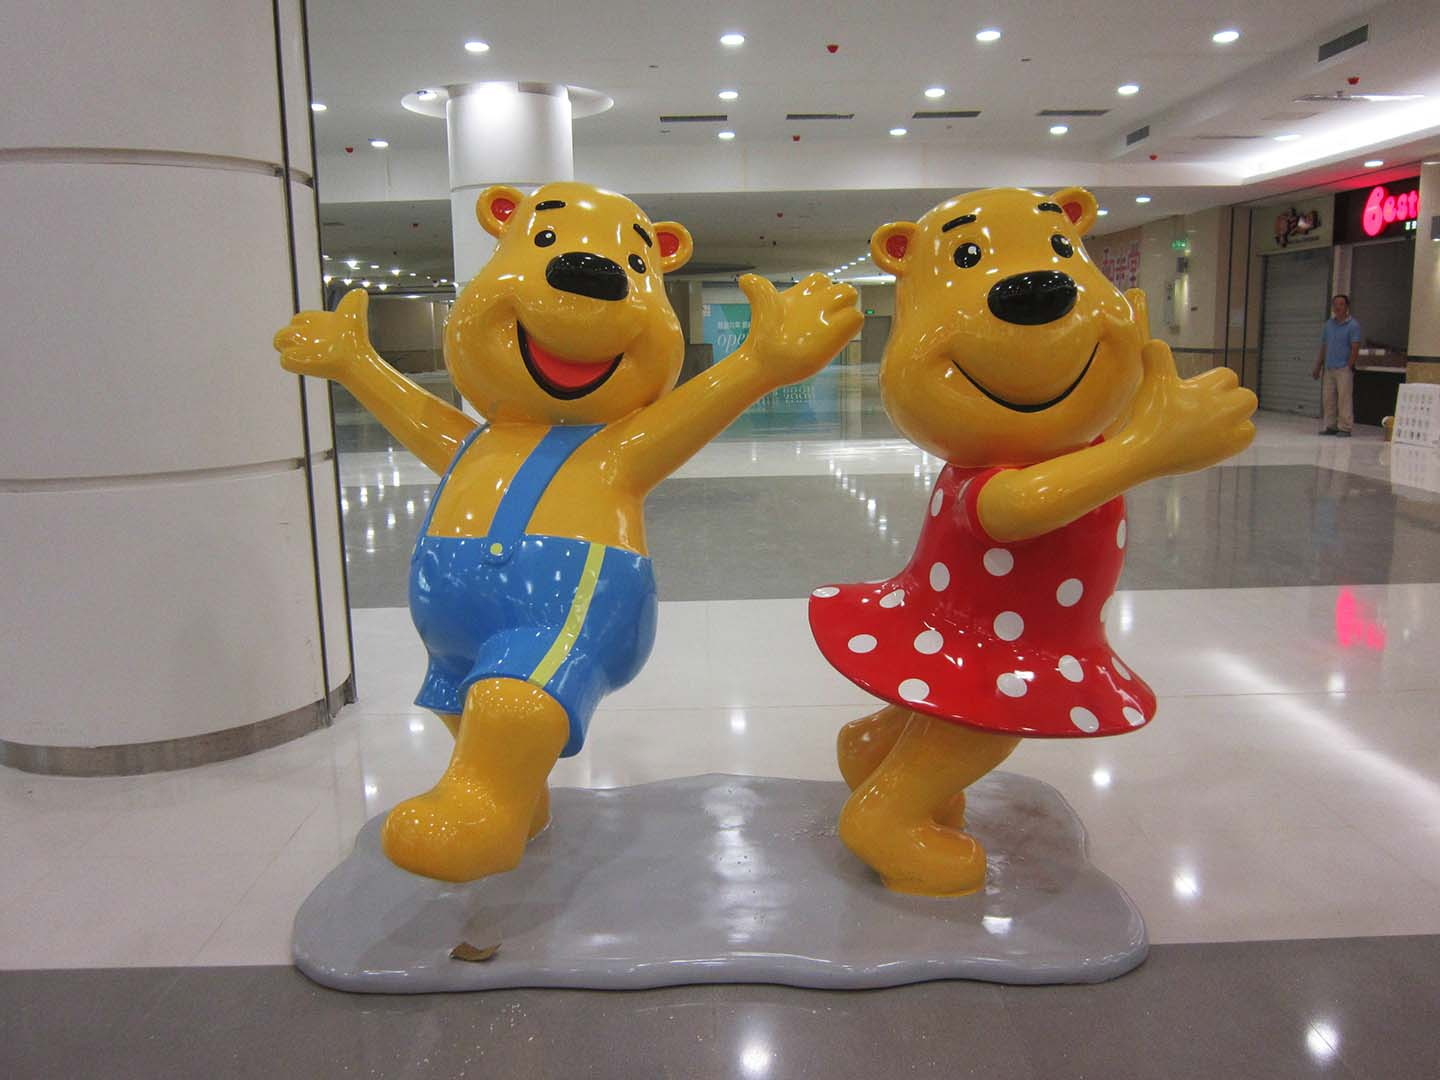 Bear Statue - Resin bear statue for shop decoration, 2 meters height with metallic painting finish